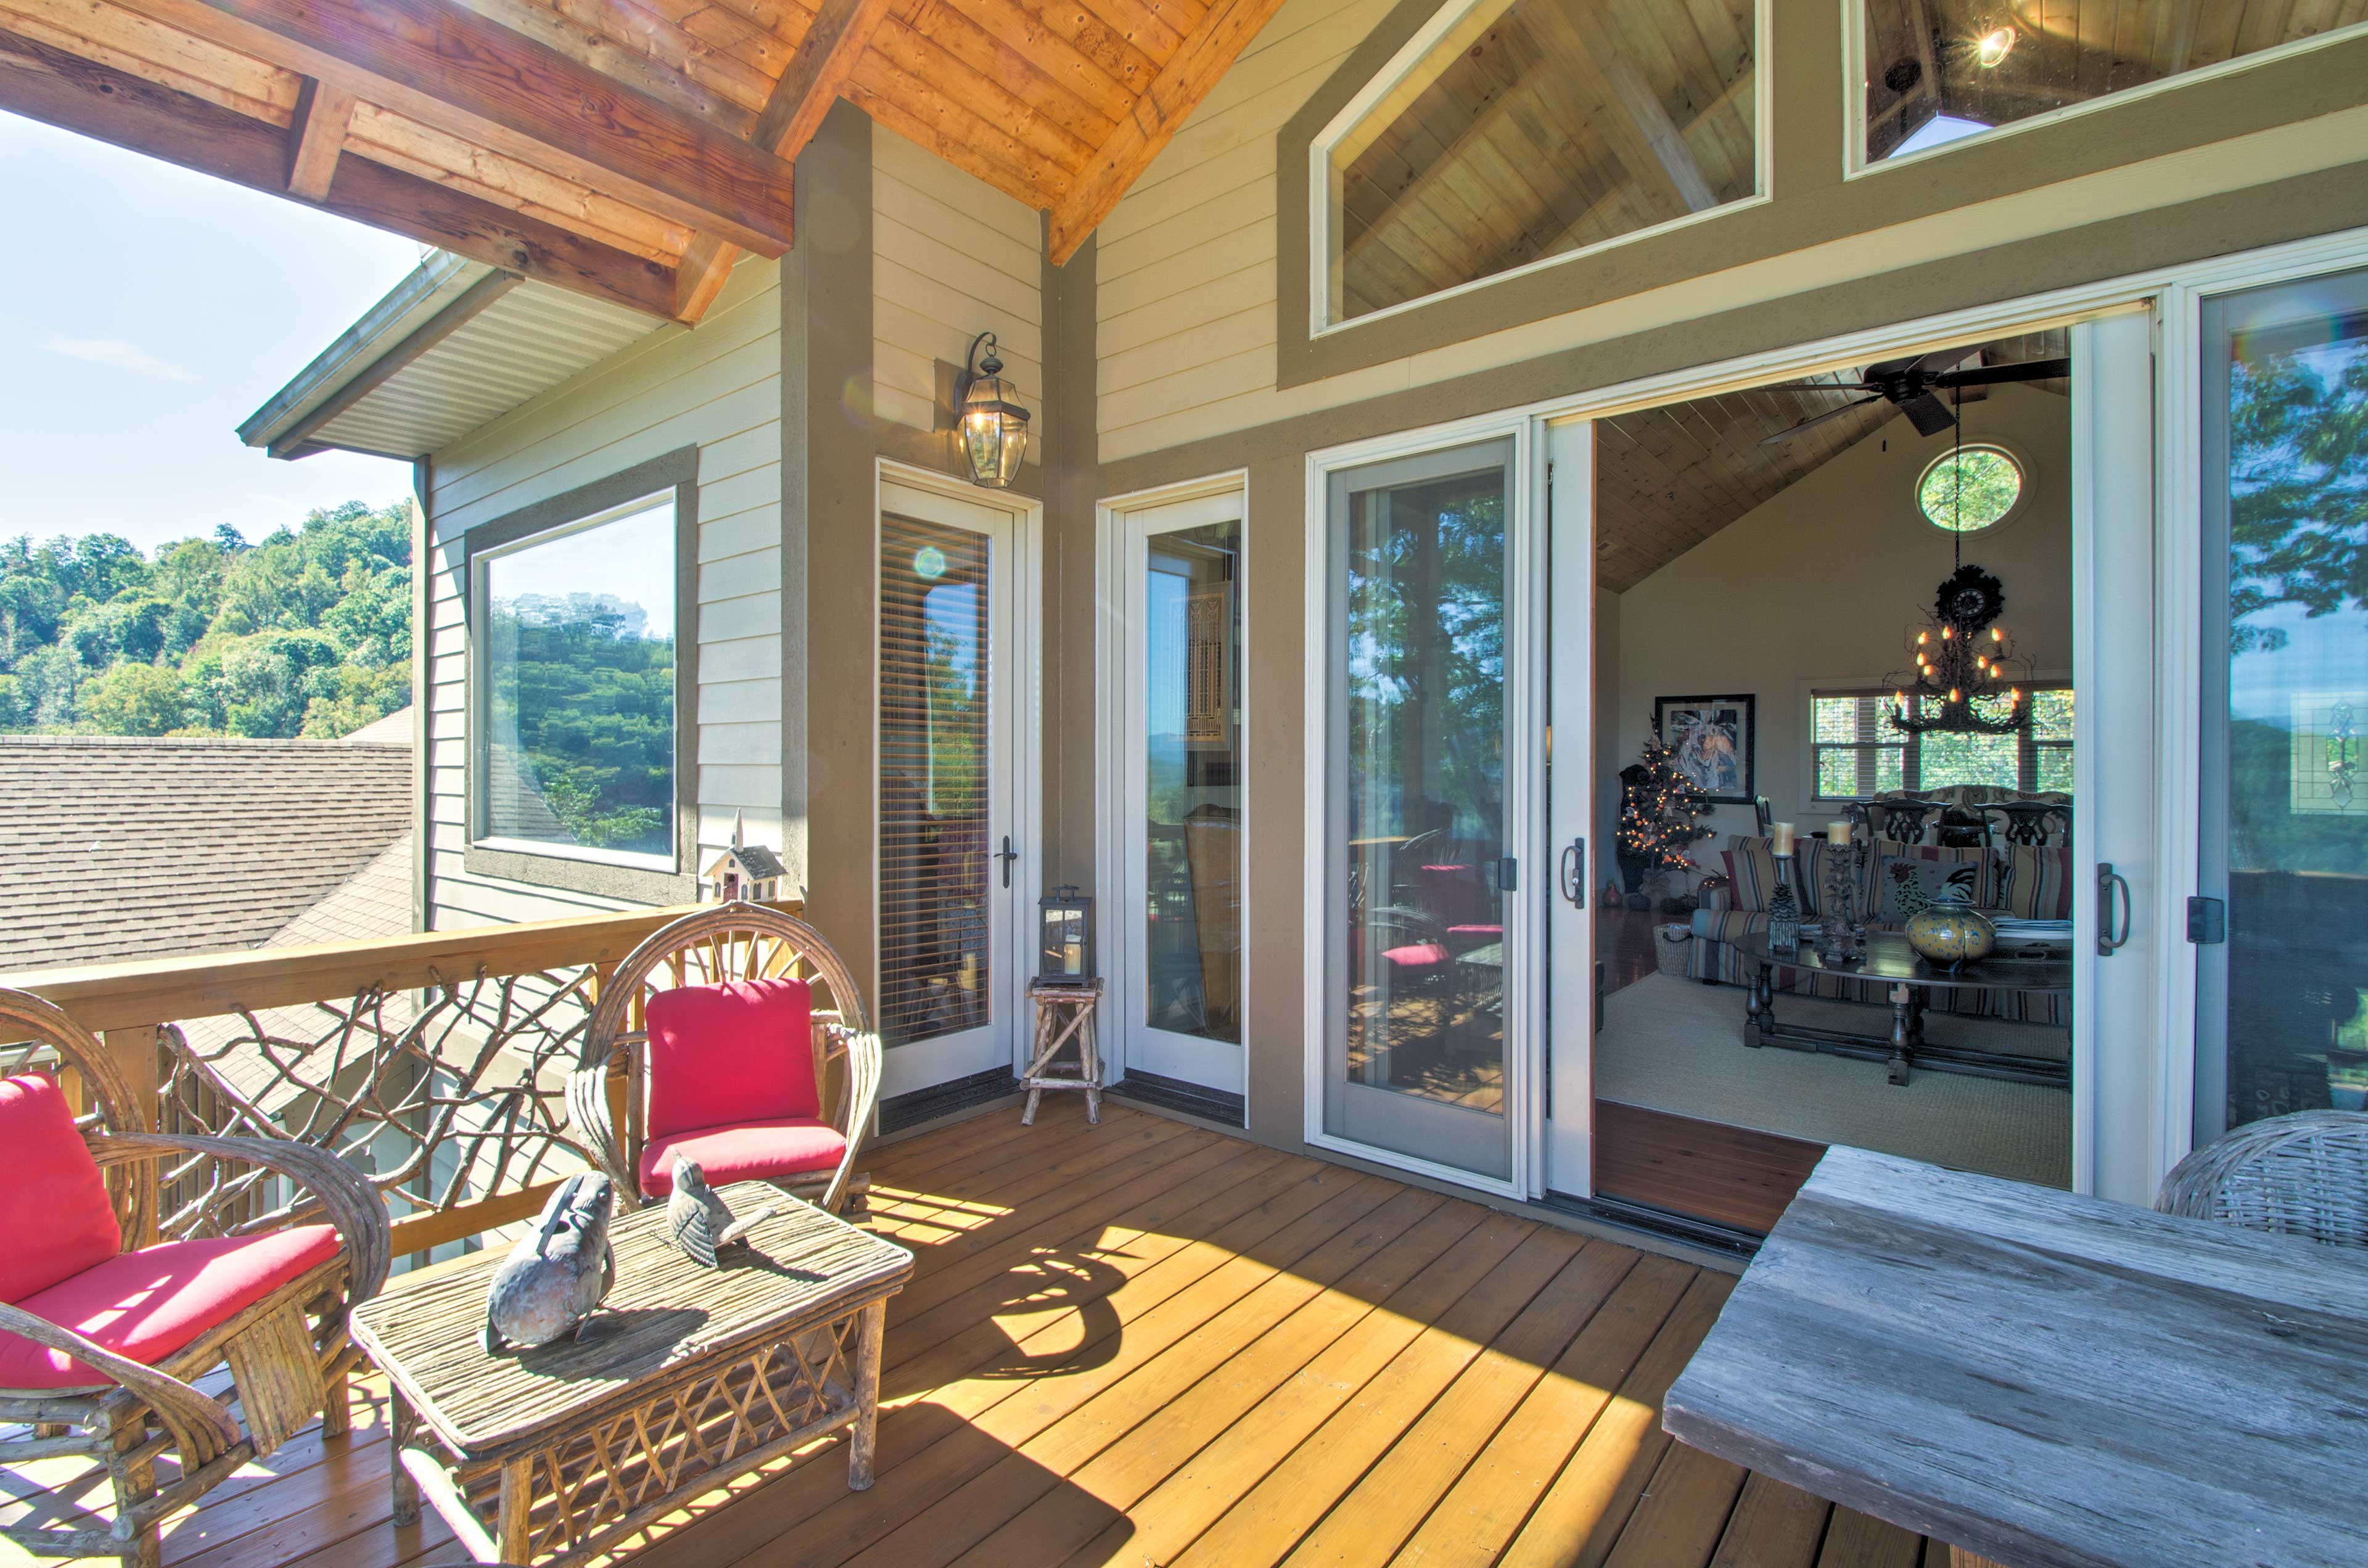 From the living area, access the viewing deck.